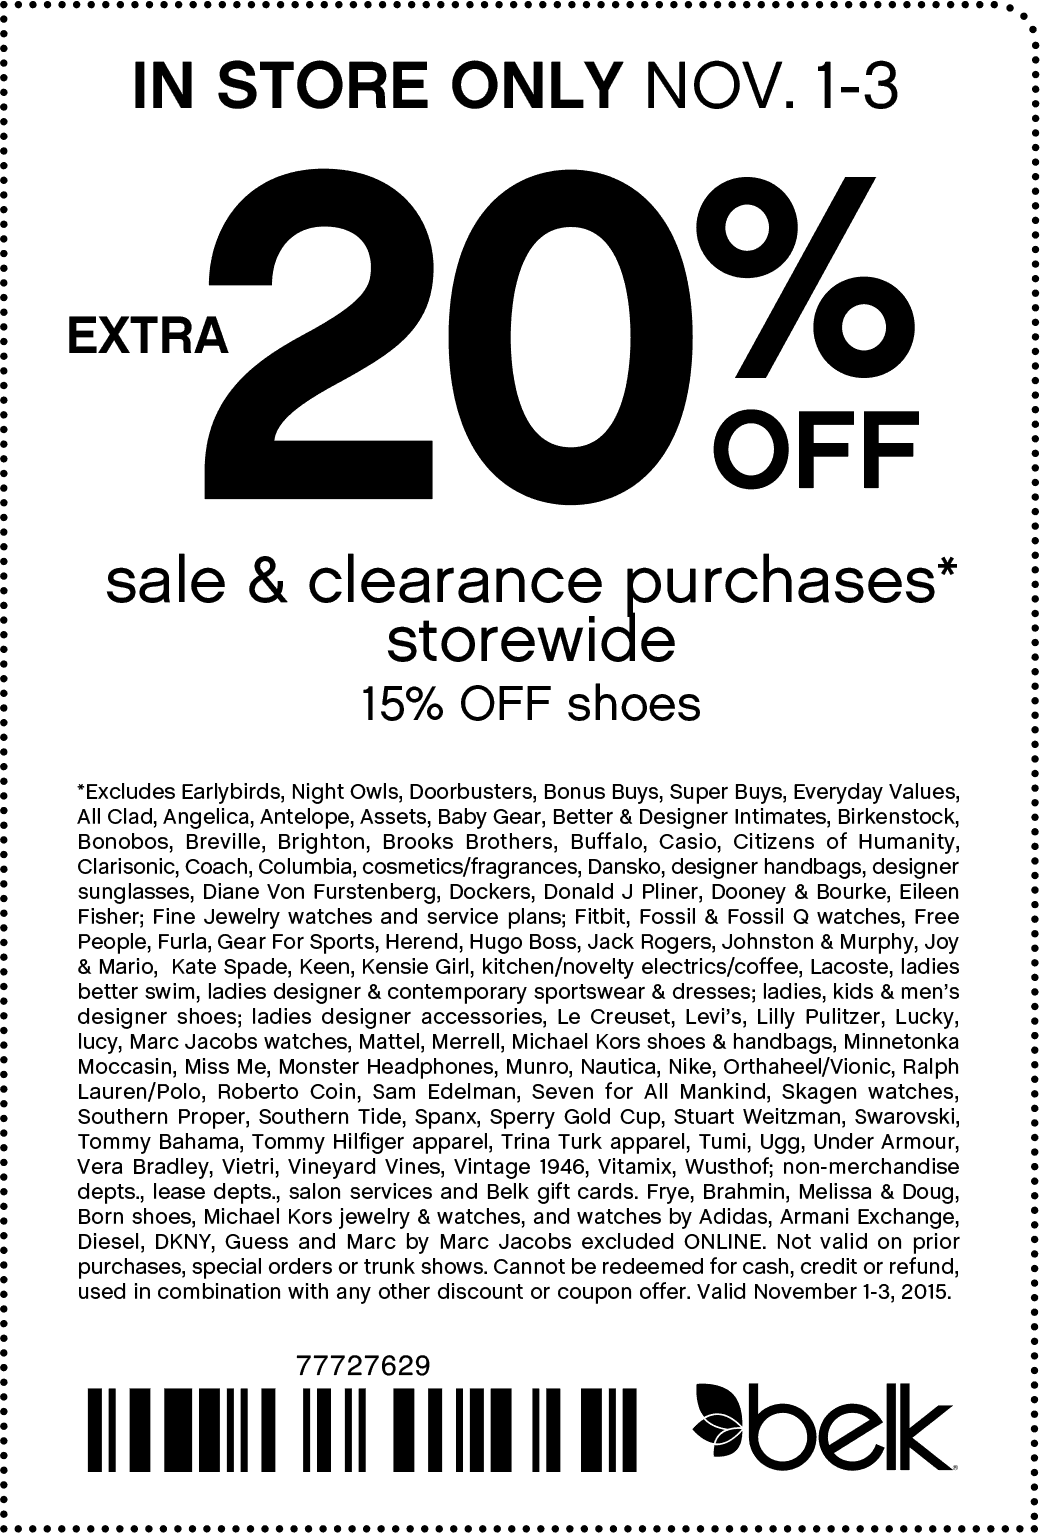 Belk Coupon July 2018 Extra 20% off sale & clearance at Belk